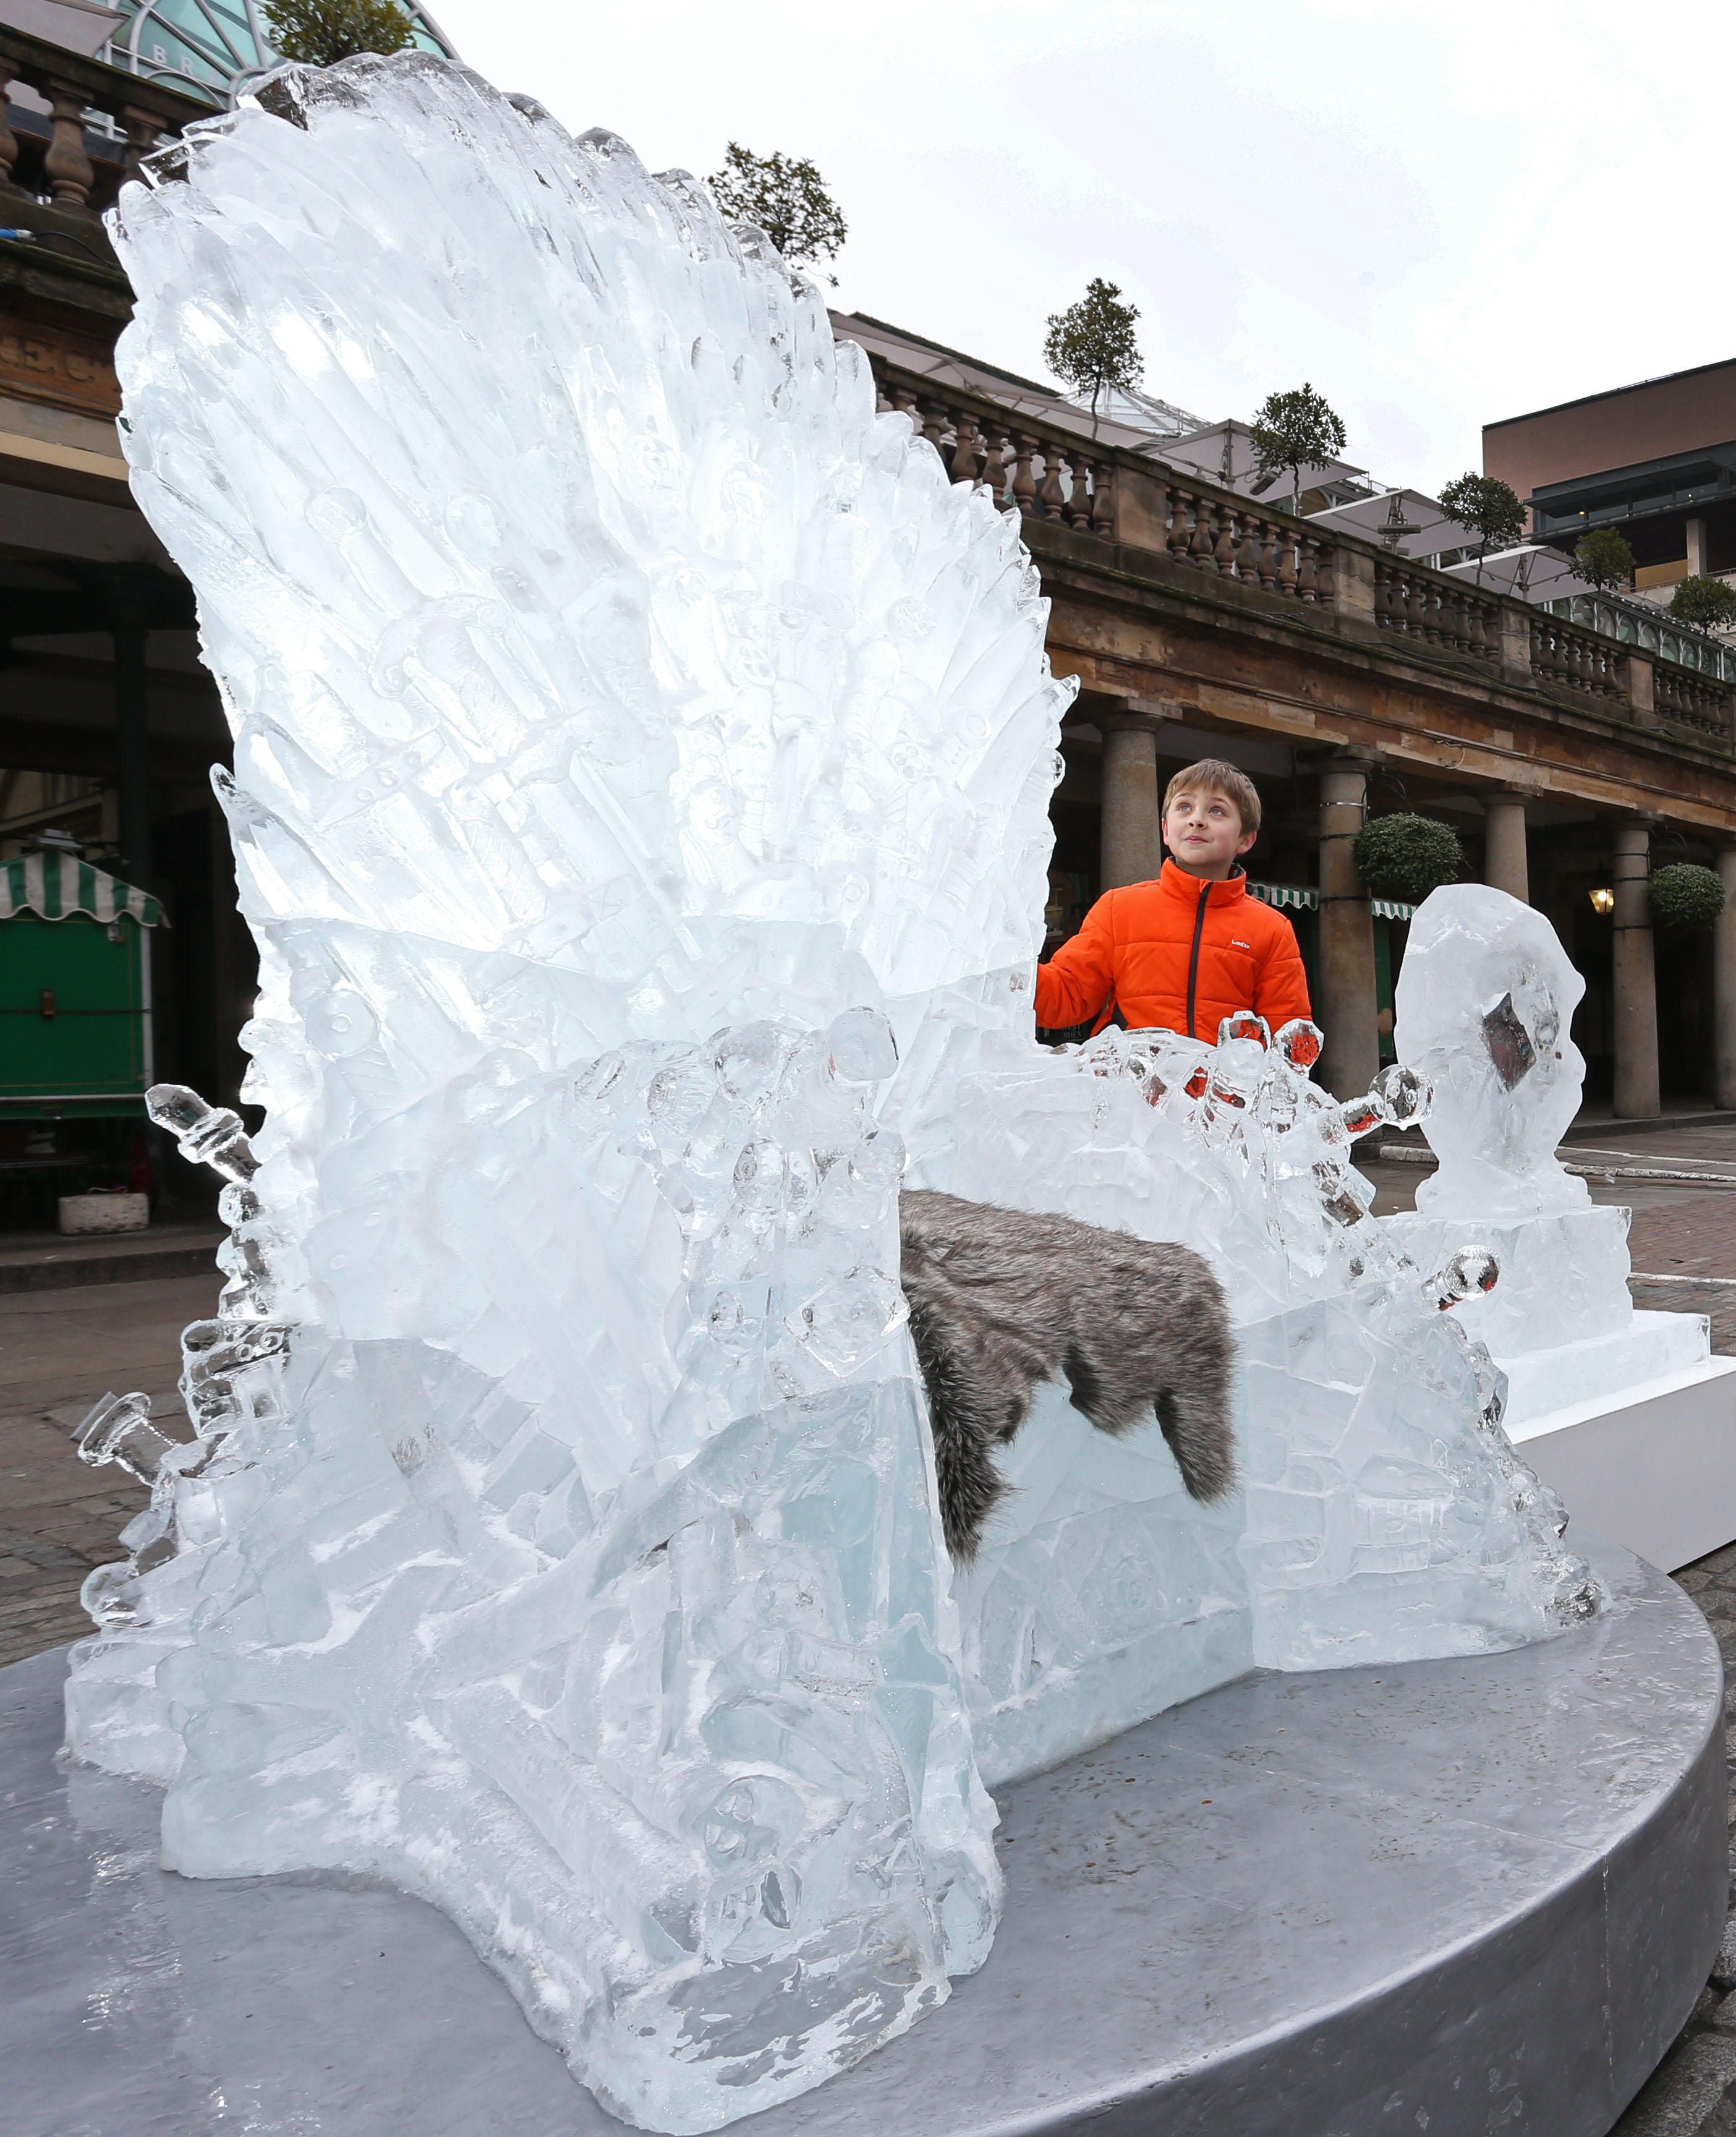 'Game of Thrones' ice throne in London - P 2015